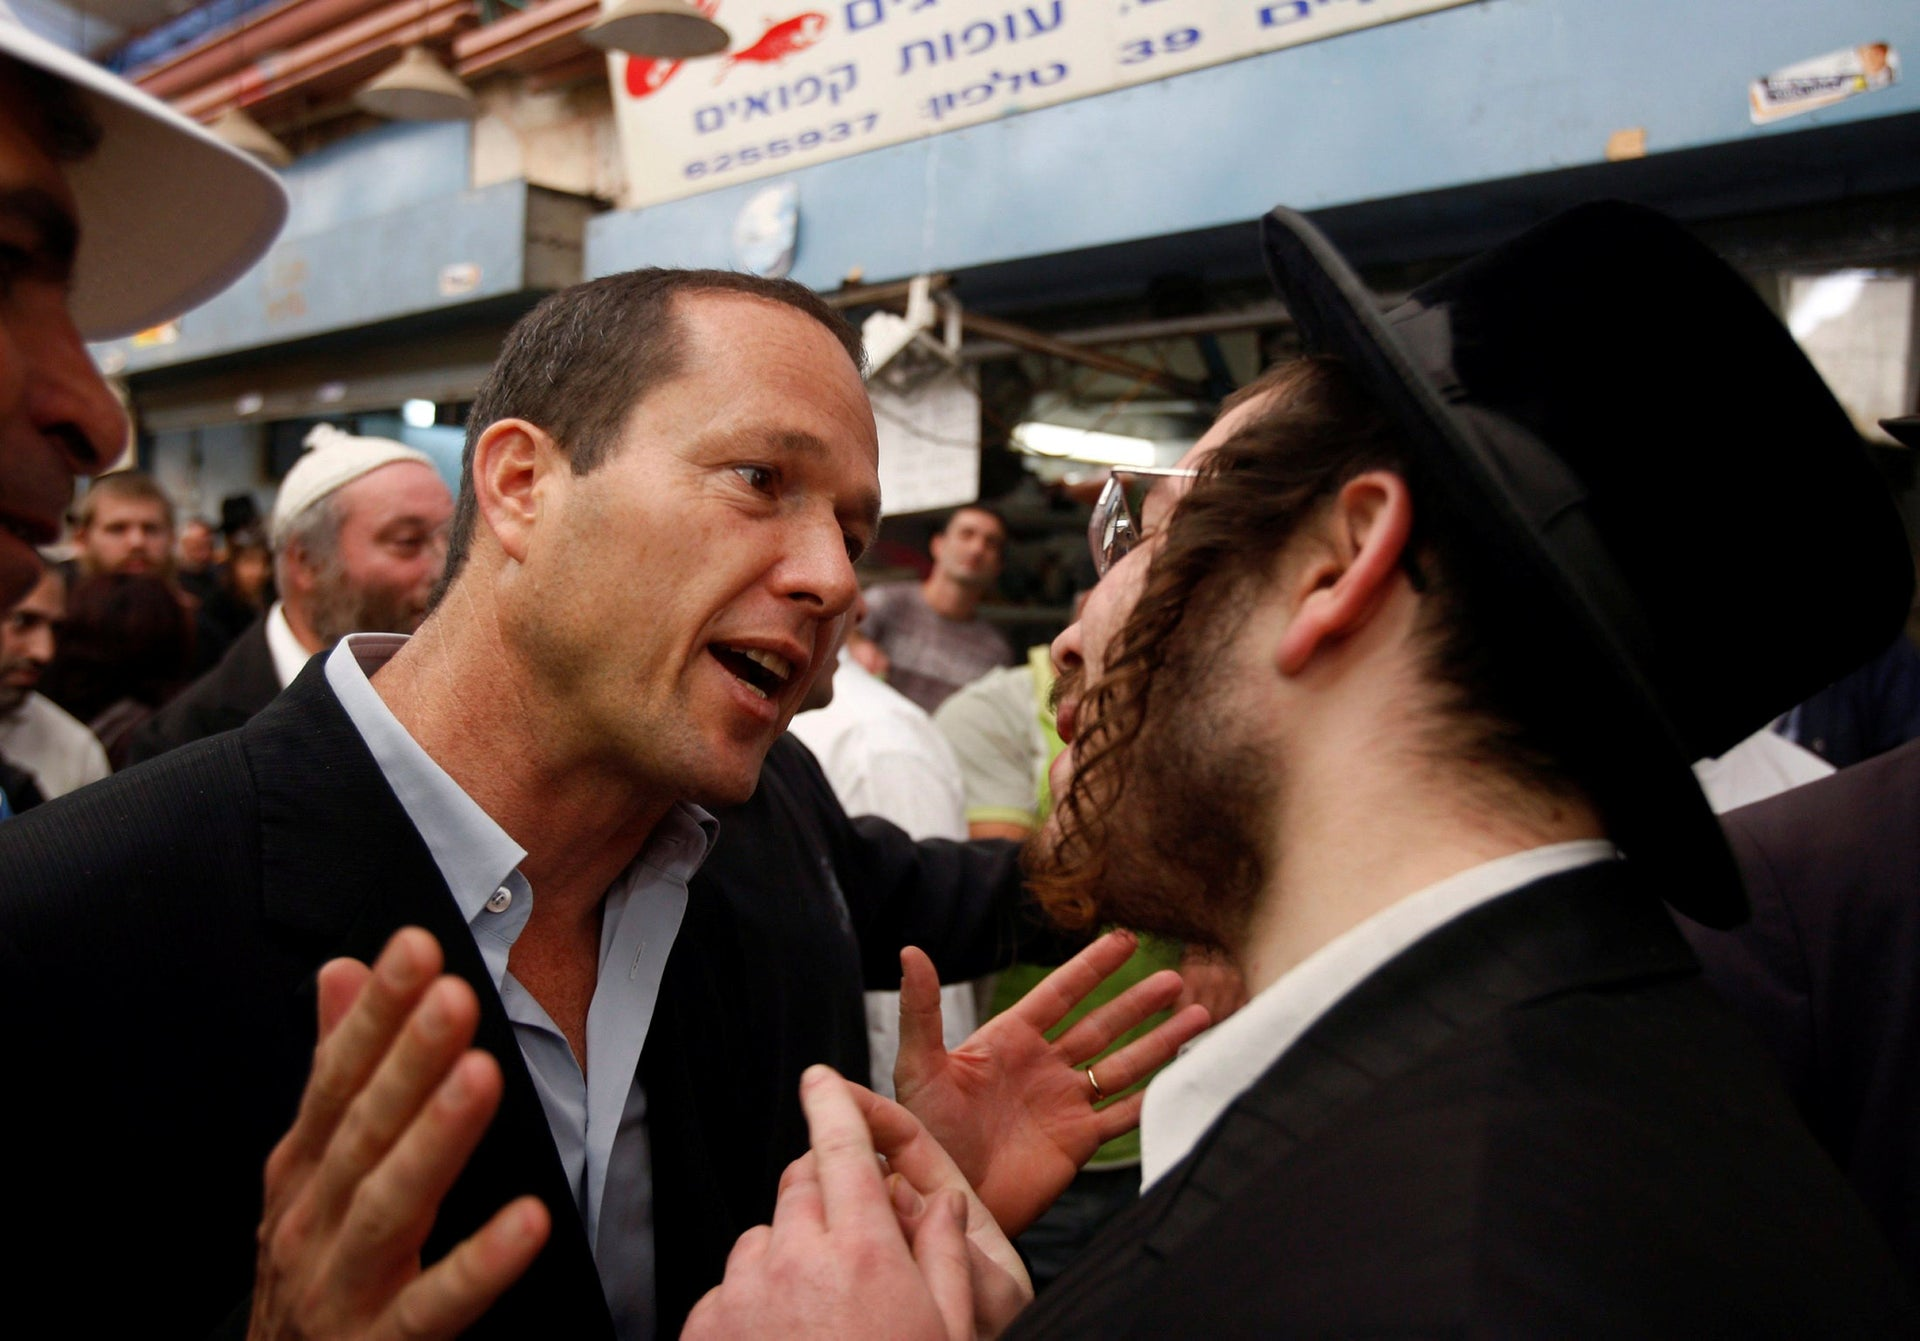 Nir Barkat (L), a Jerusalem mayoral candidate, speaks to an ultra-Orthodox Jew during a visit to a fruit and vegetable market in Jerusalem November 6, 2008. An Israeli mayoral election in Jerusalem has turned the holy city into a political battleground between secular and ultra-Orthodox Jews